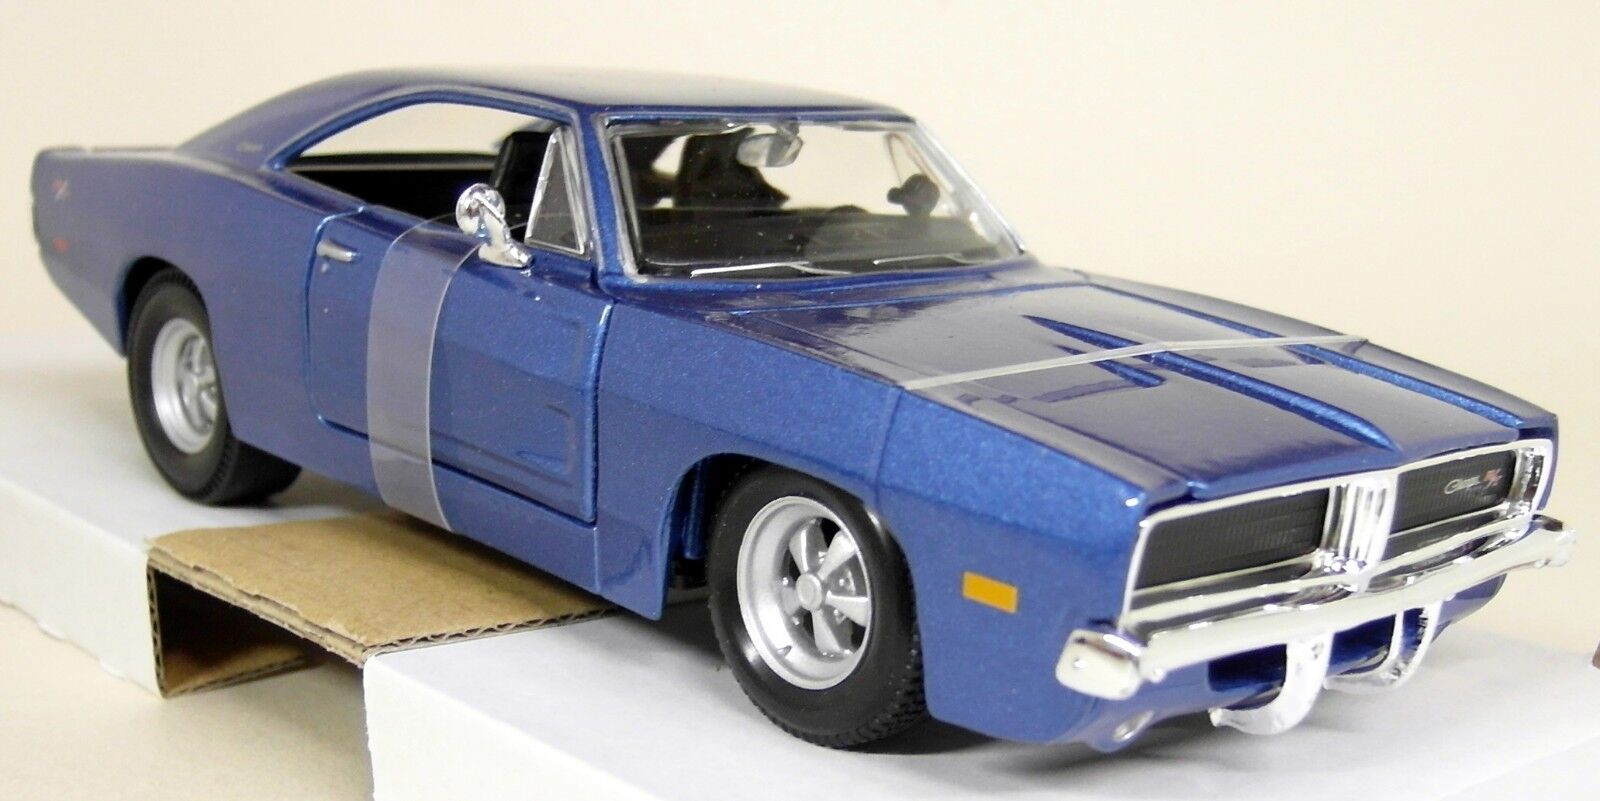 Maisto 1 25 Scale - 1969 Dodge Charger R T Metallic bluee Diecast model car